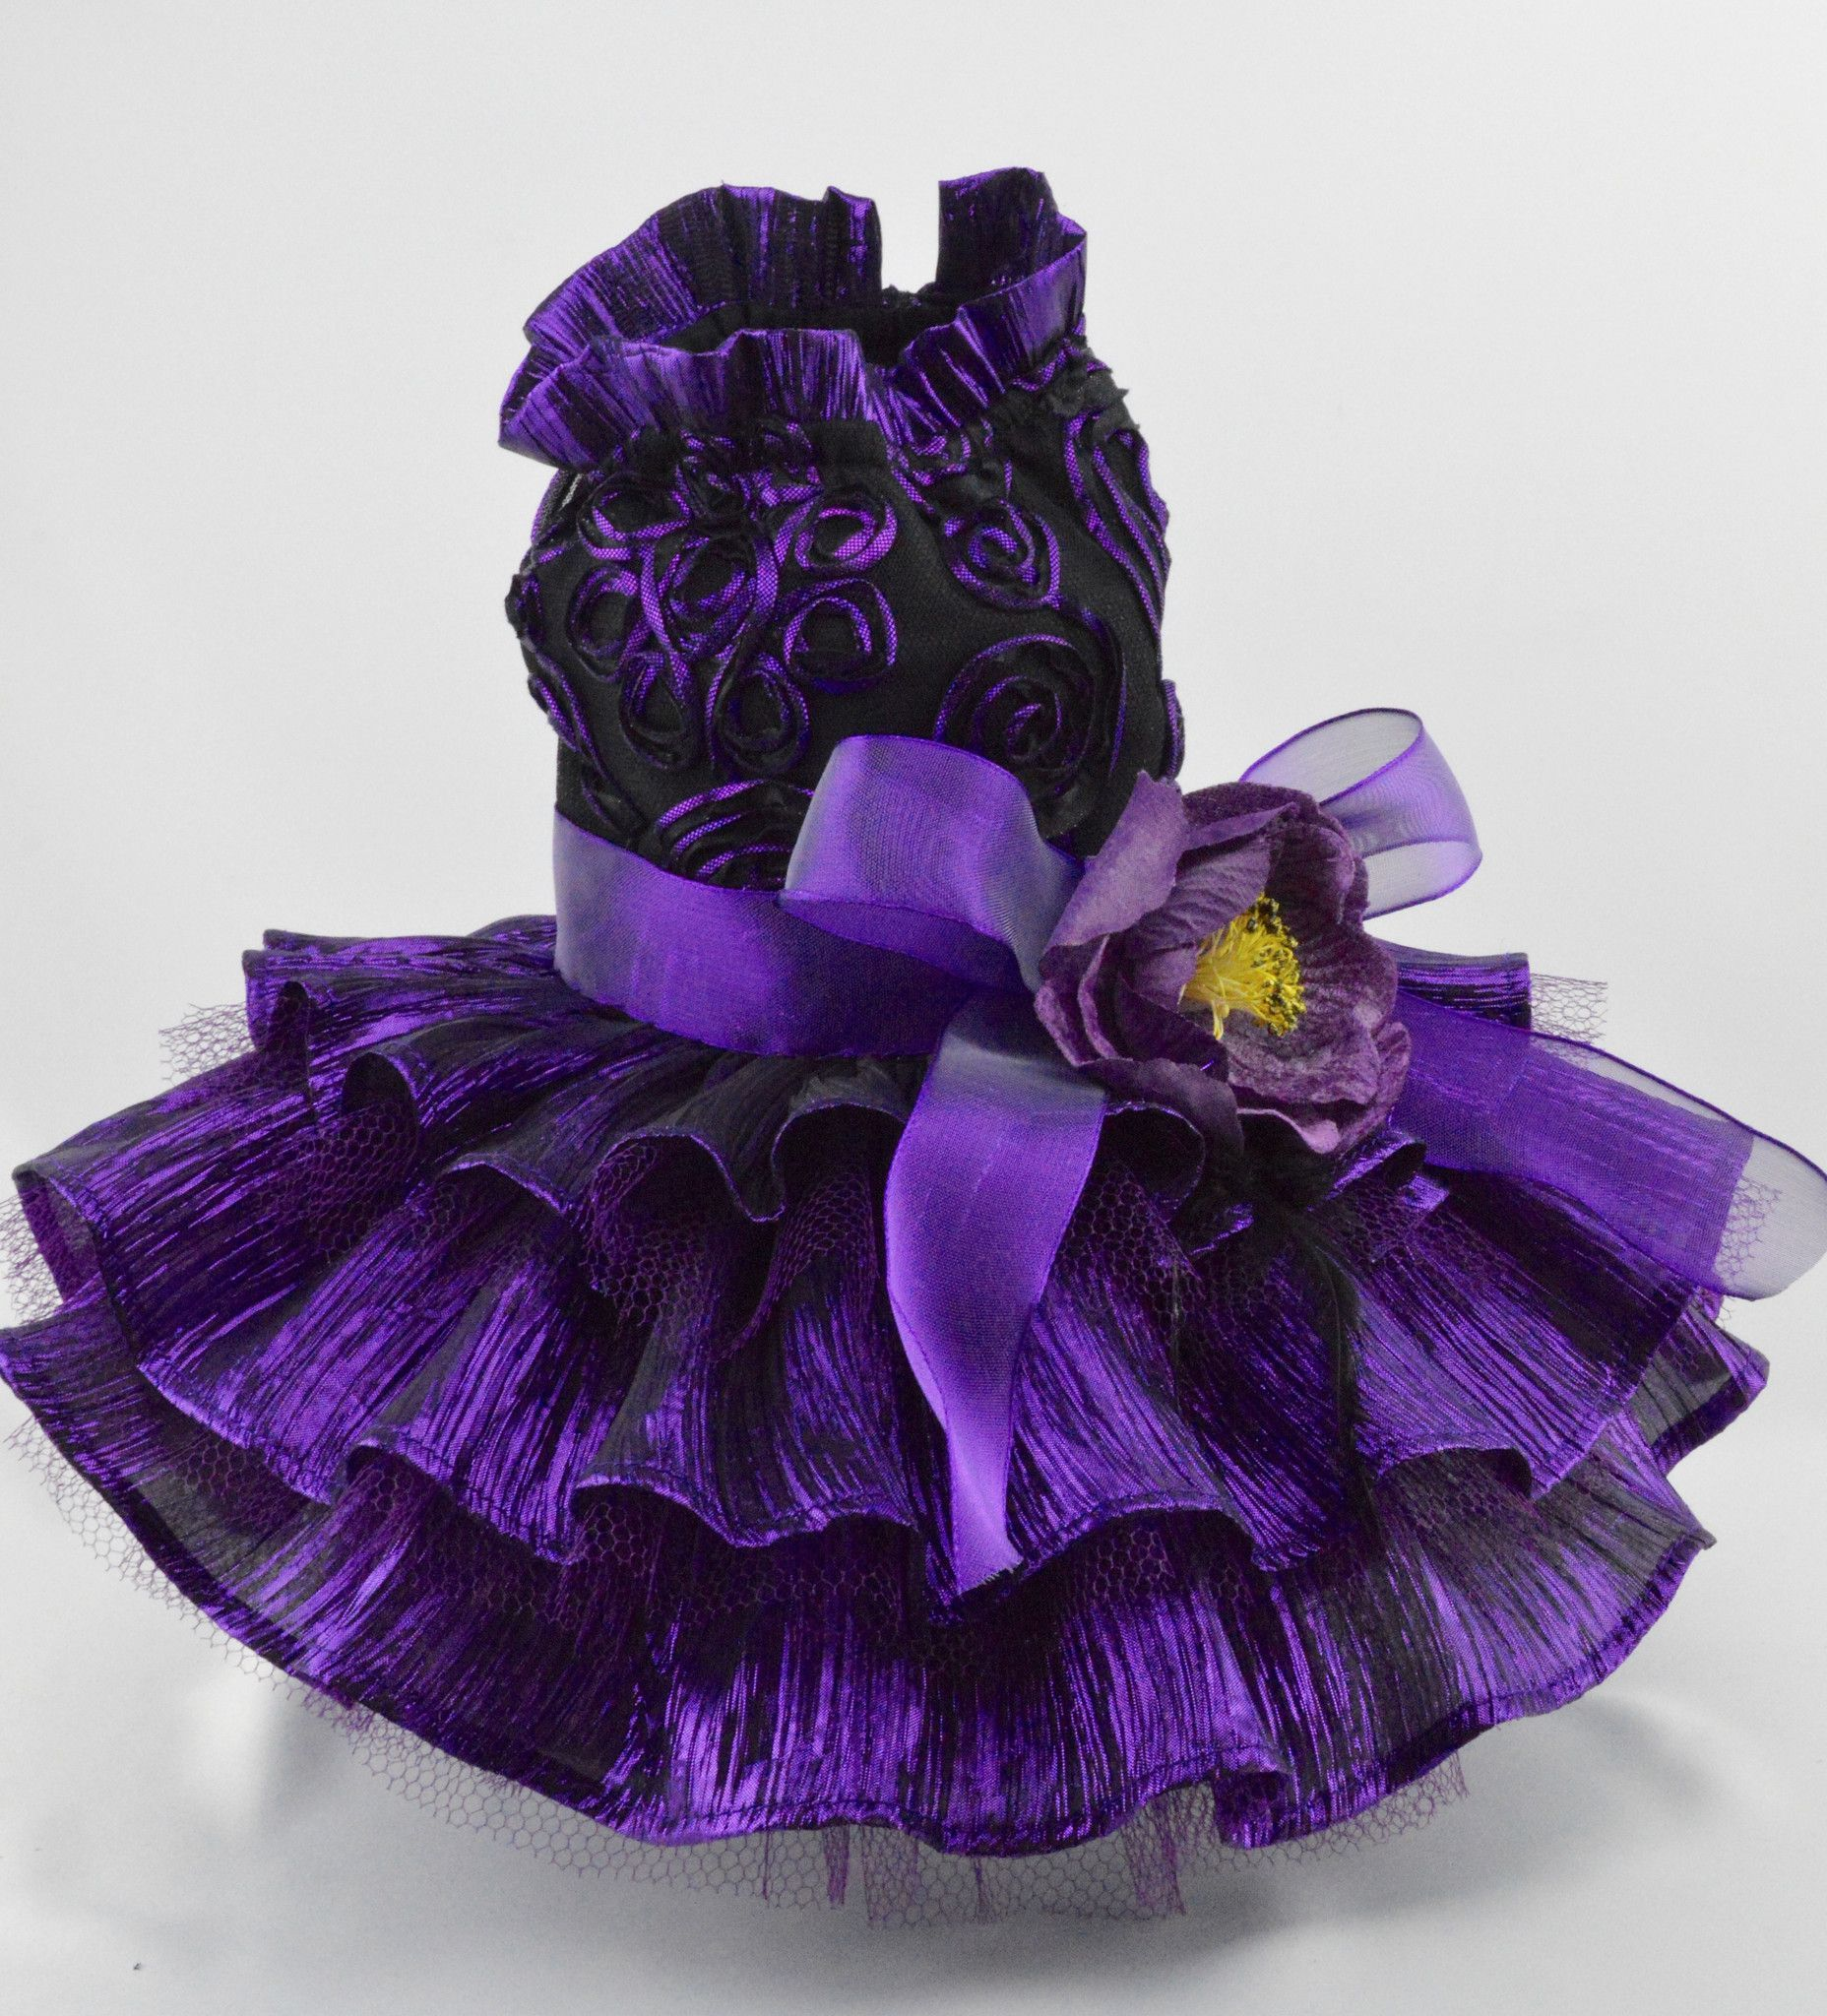 Purple Ribbon Lace and Reffled Skirt Dog Dress | Pet Products ...